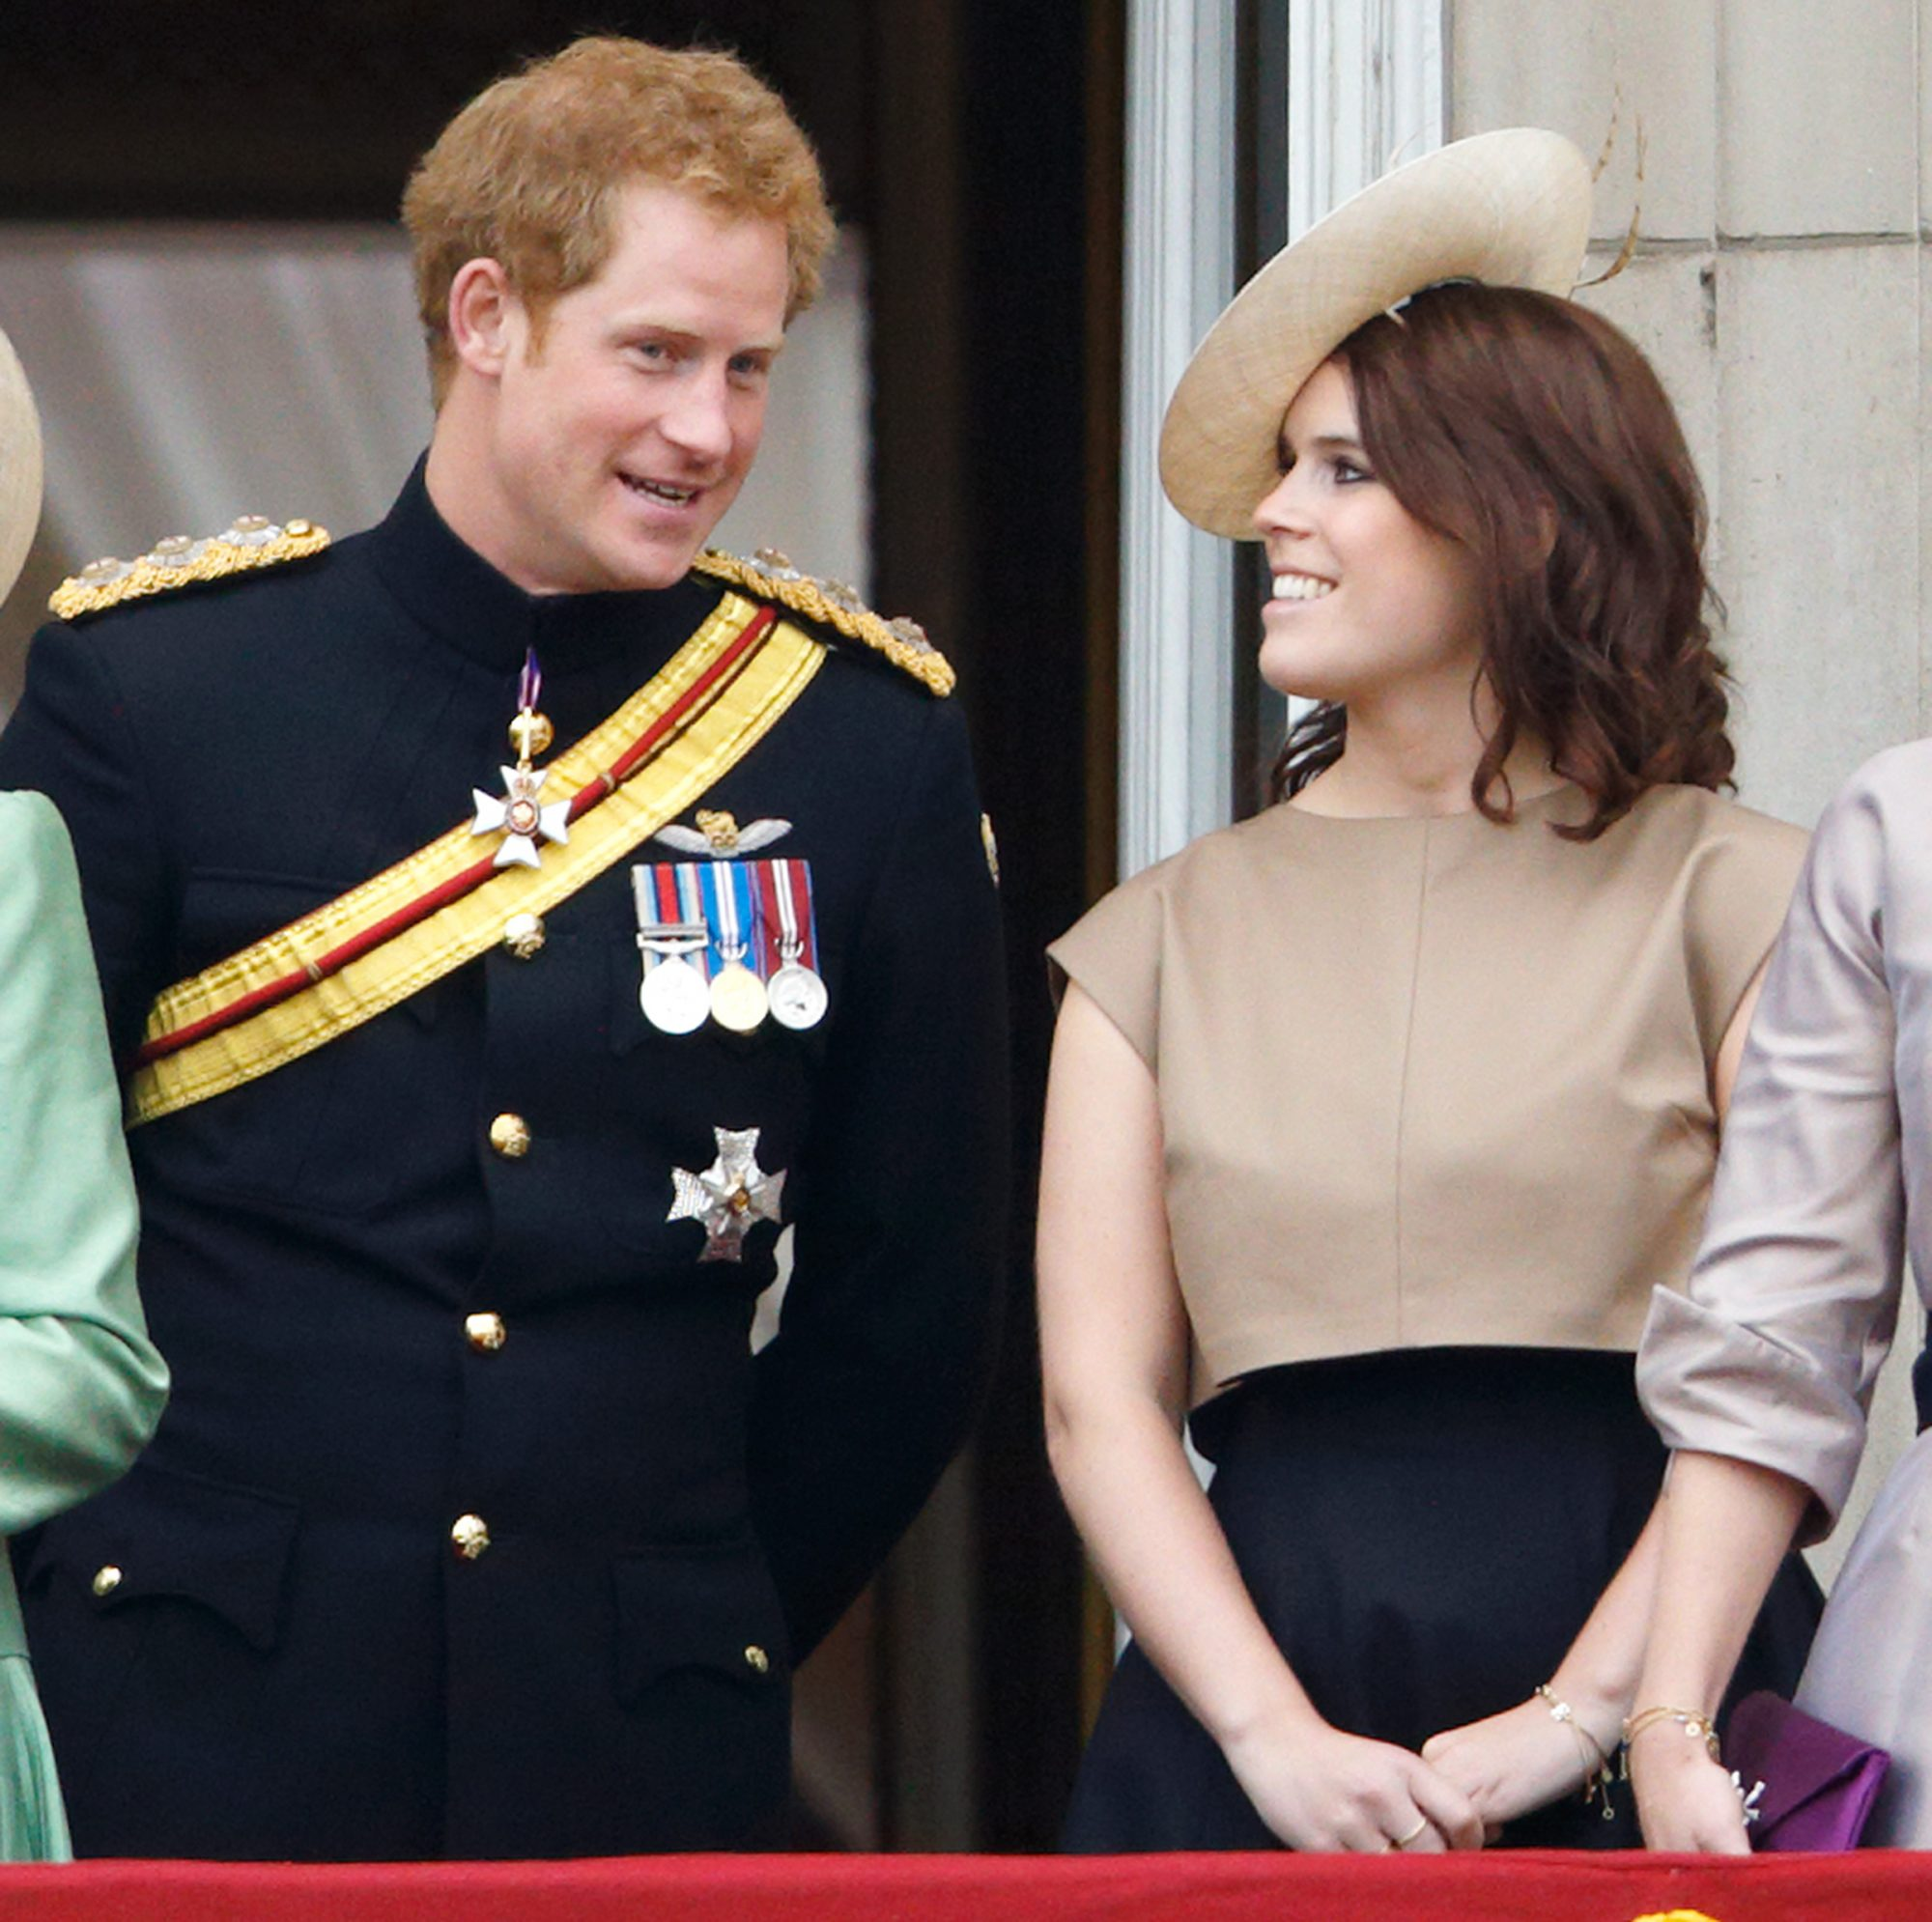 Prince Harry and Princess Eugenie